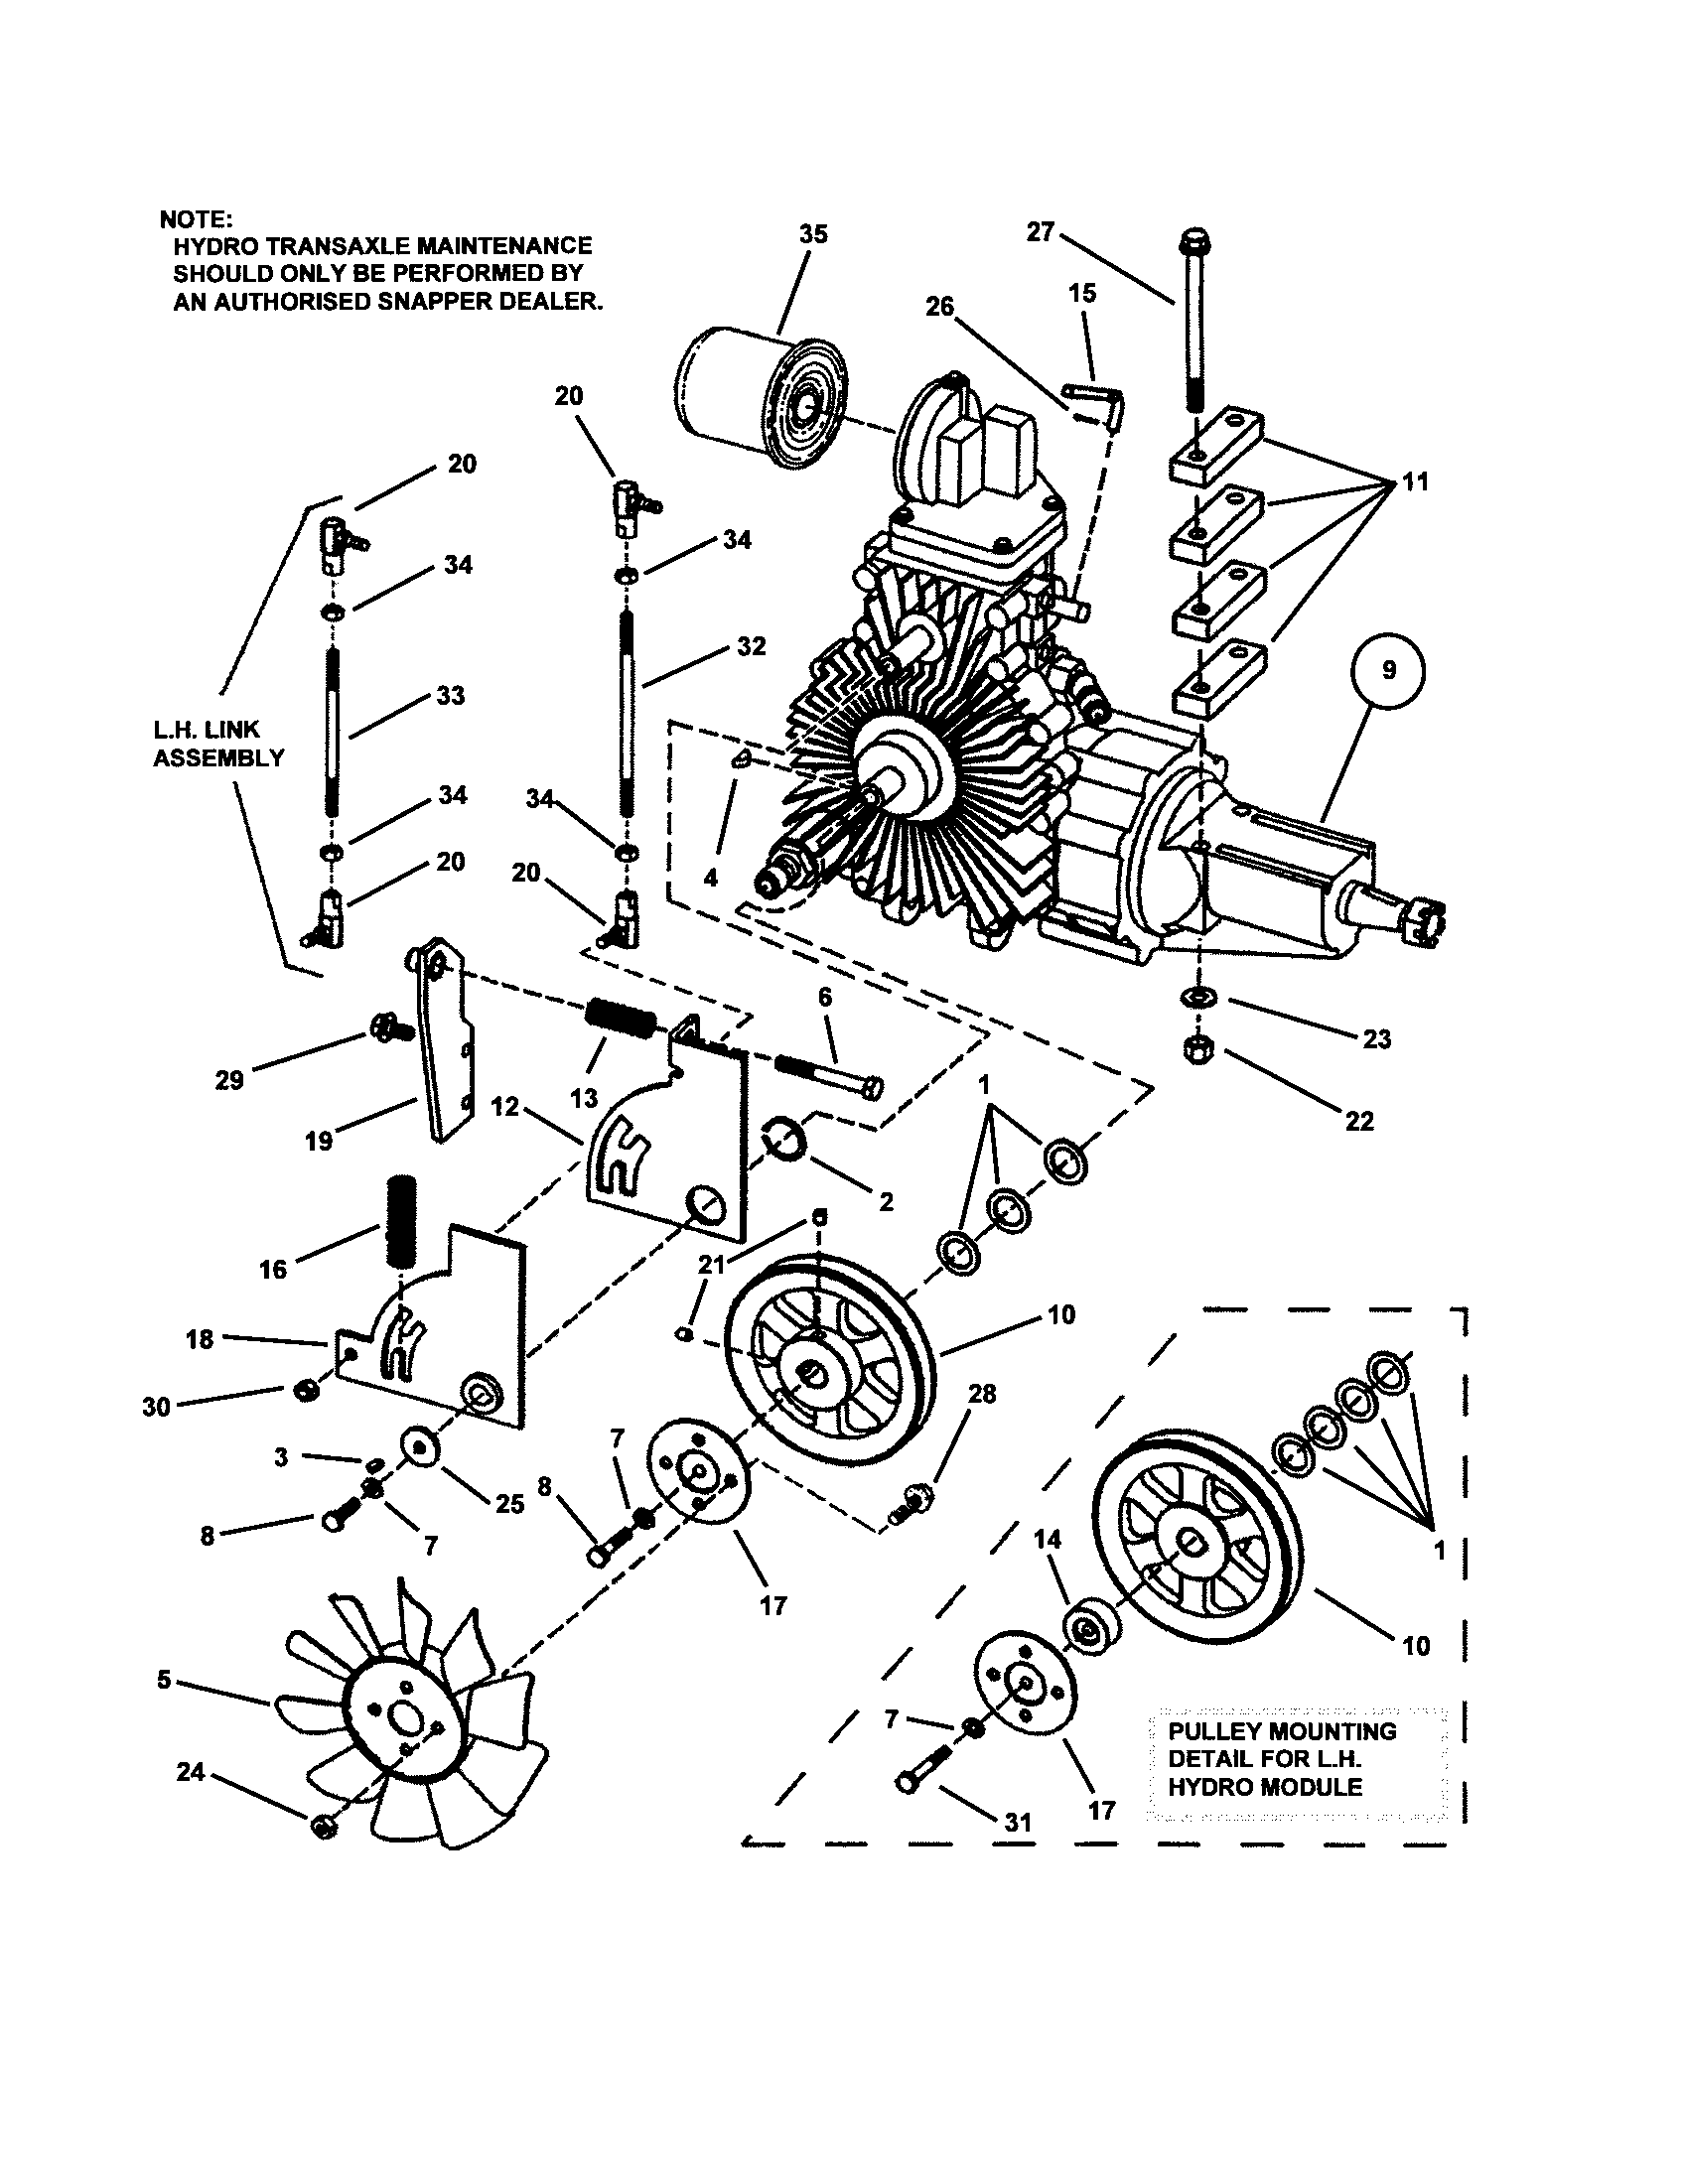 Engine Wiring Diagrams Together With Snapper Z Rider Wiring Diagram